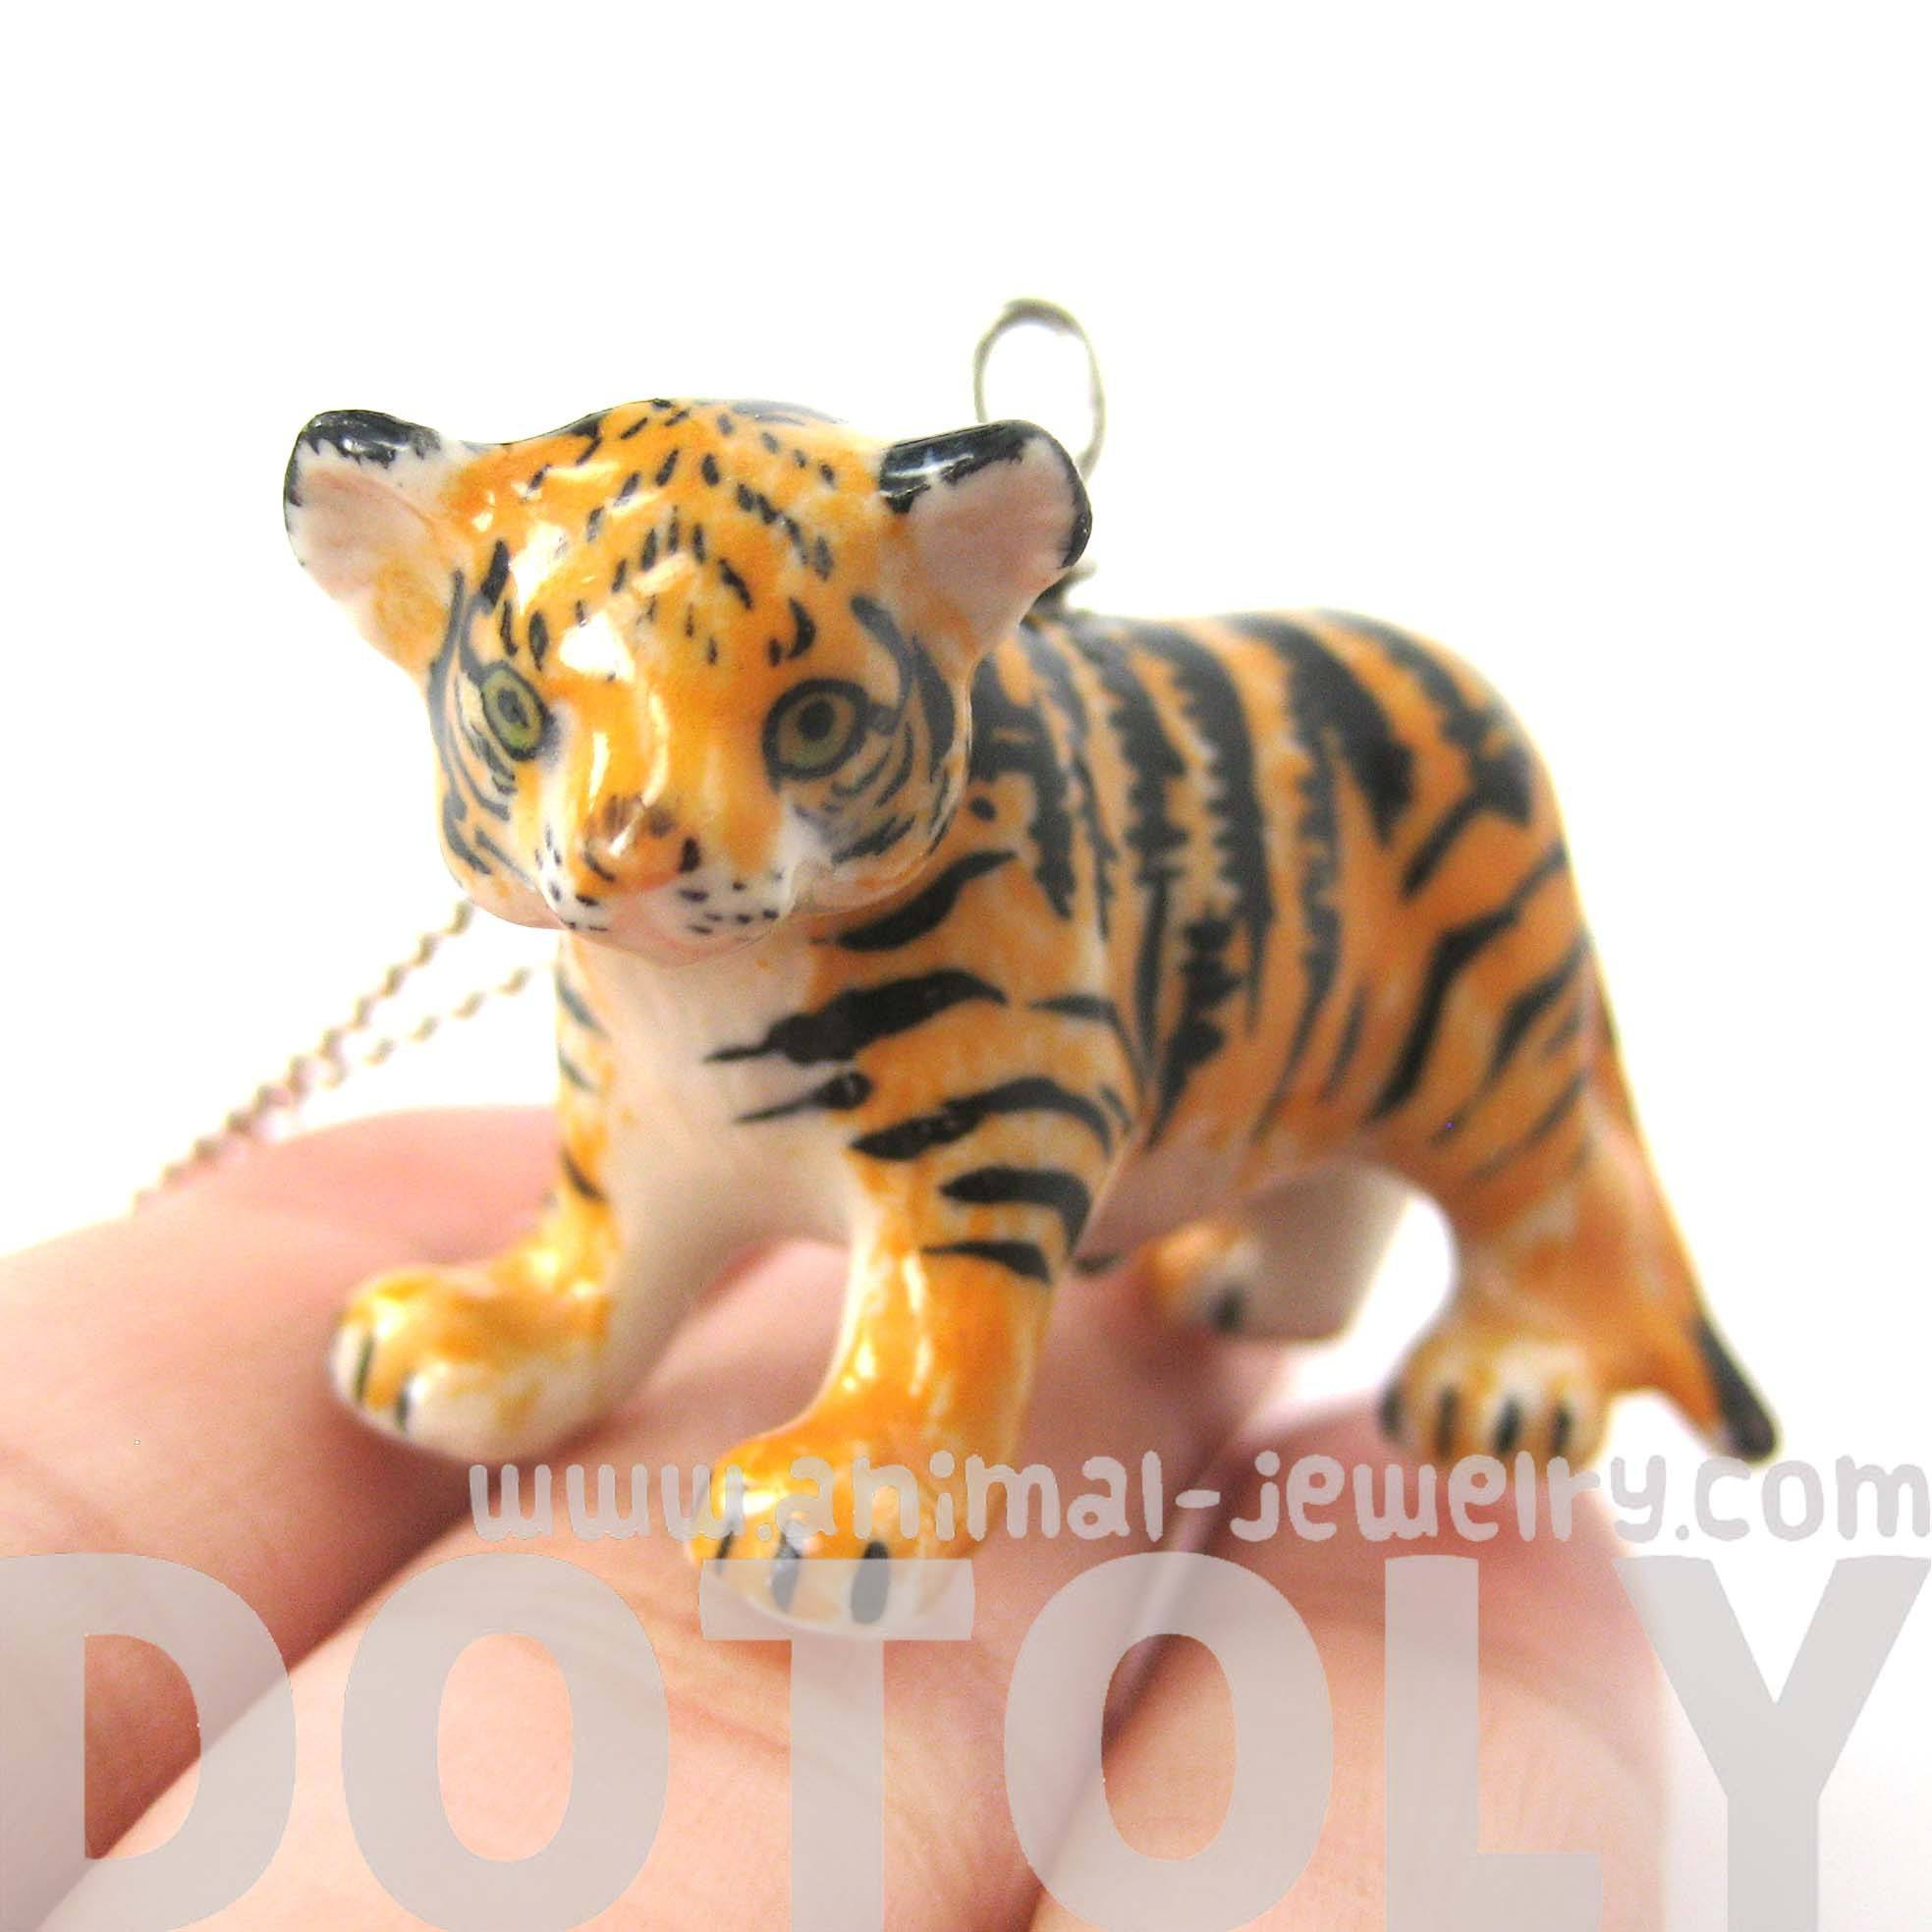 baby-tiger-porcelain-ceramic-detailed-animal-pendant-necklace-handmade